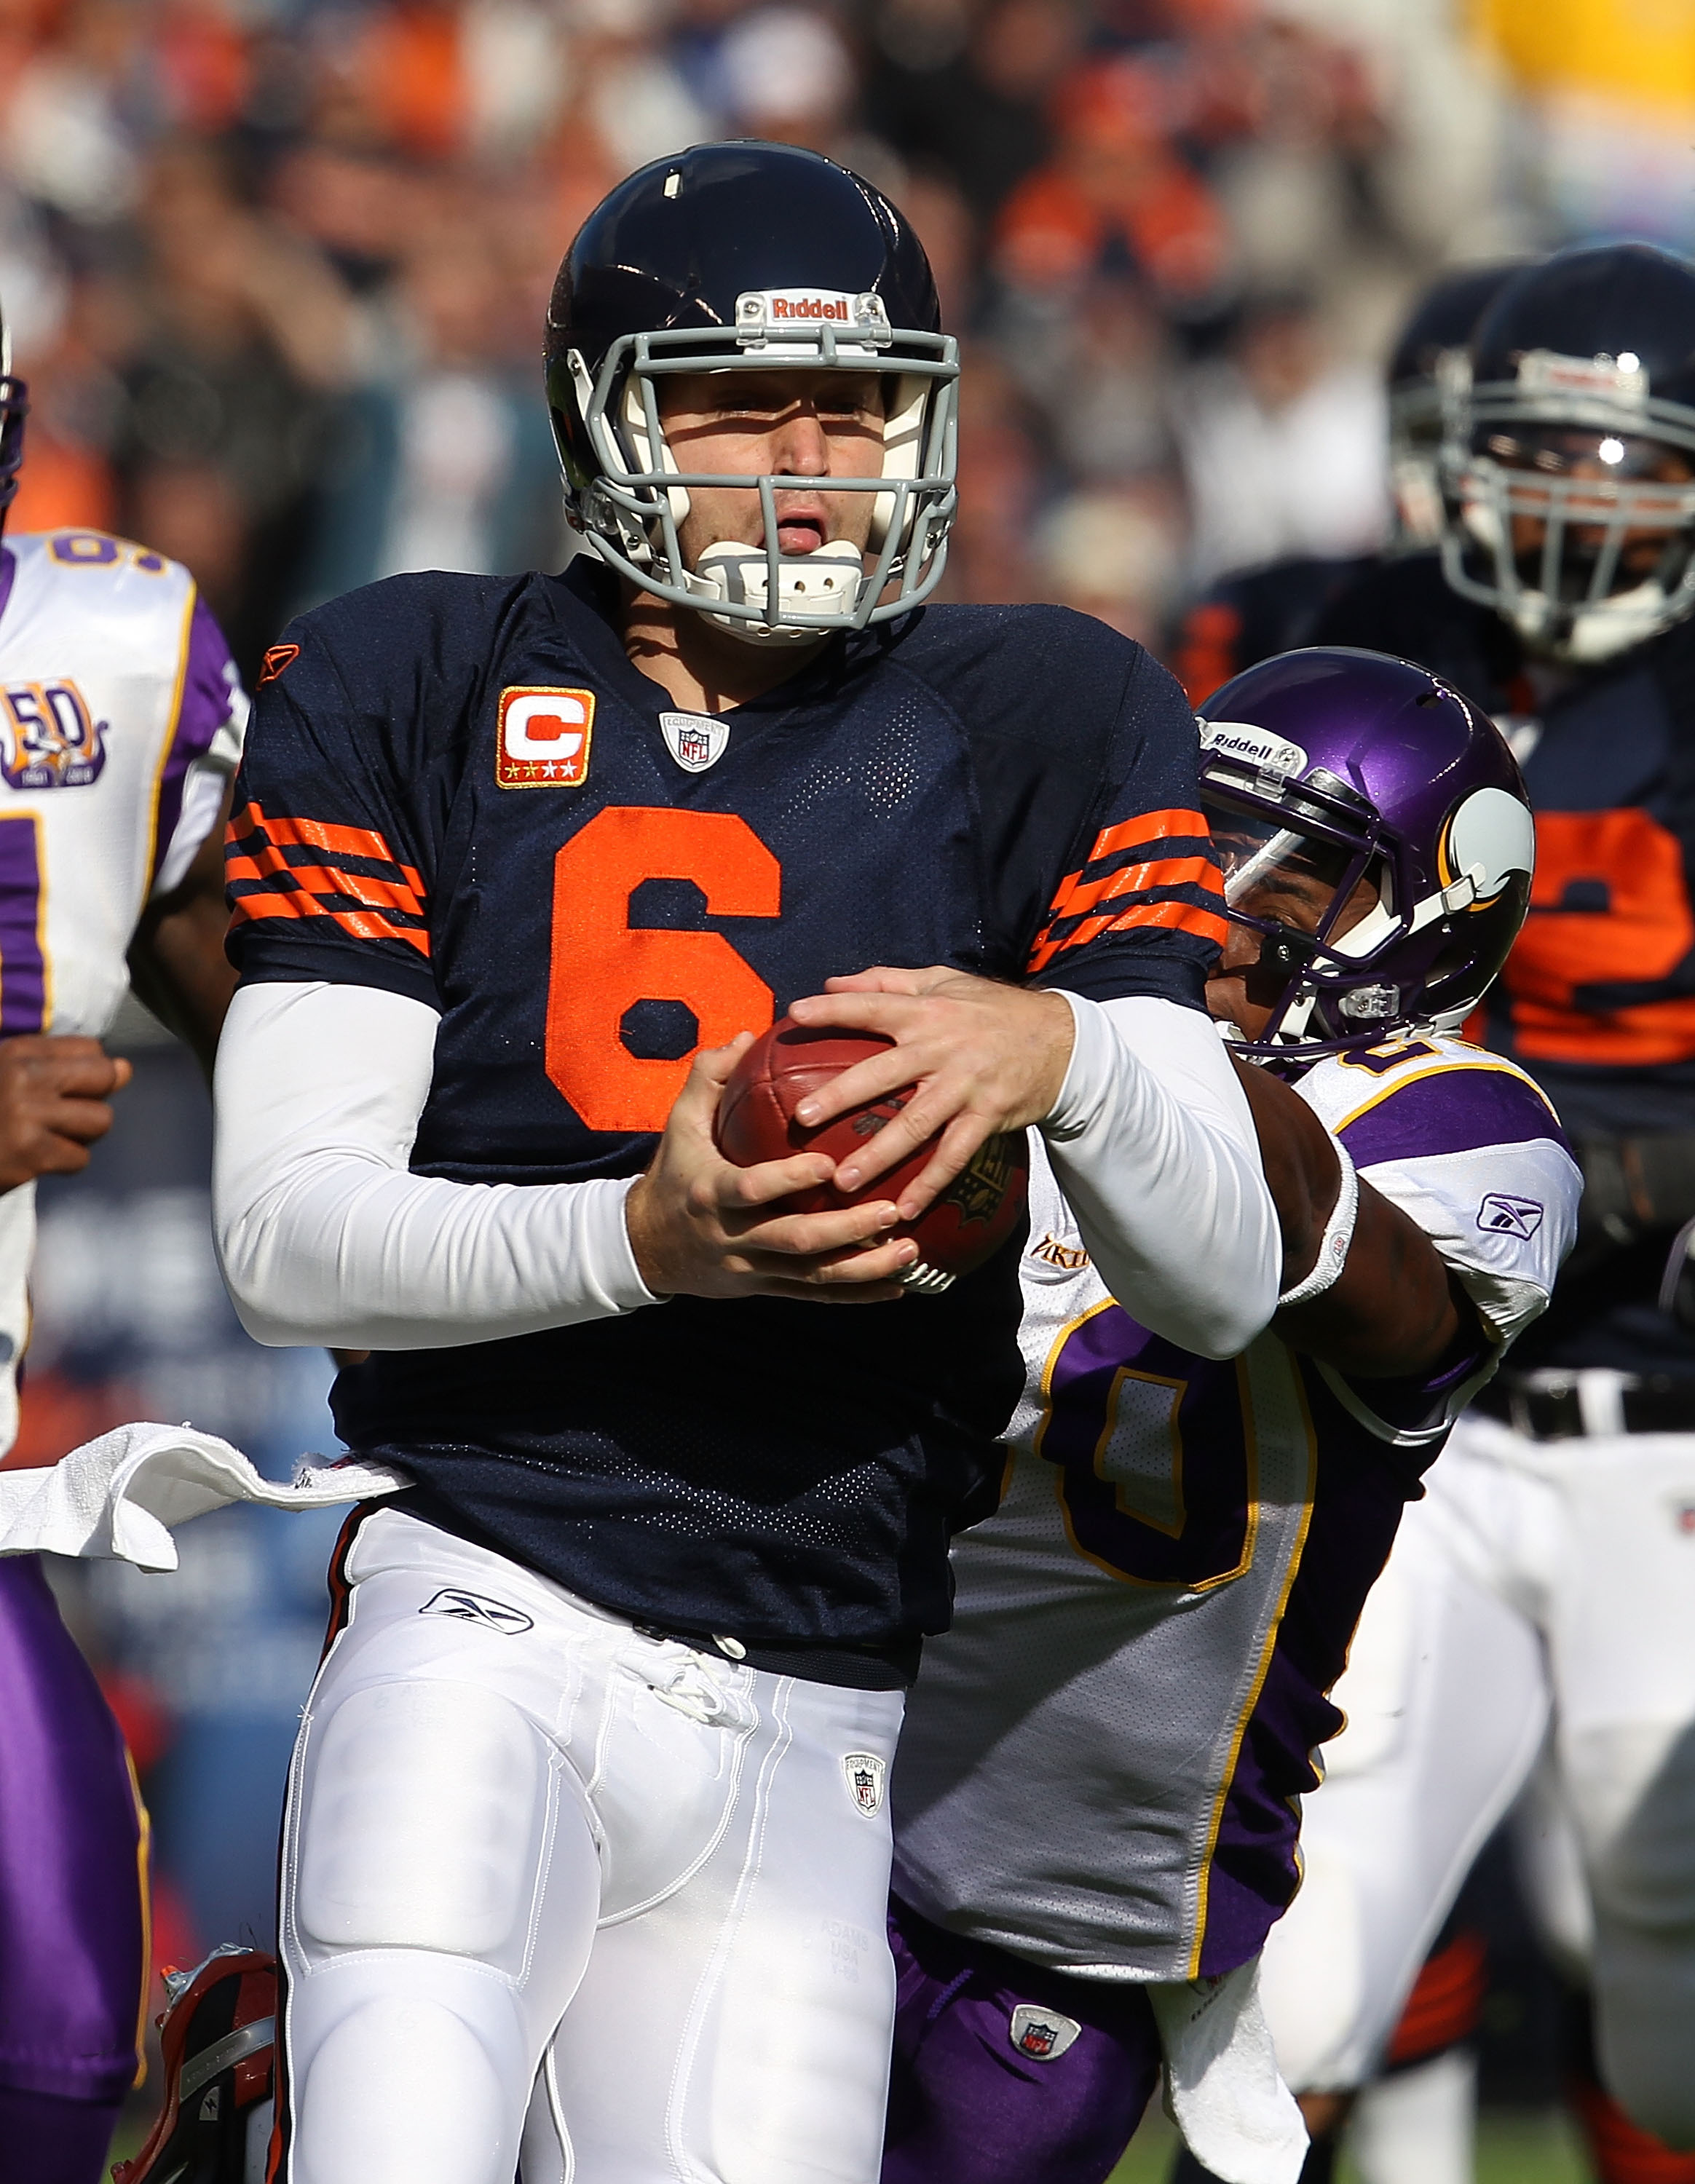 CHICAGO - NOVEMBER 14: Jay Cutler #6 of the Chicago Bears breaks away from Madieu Williams #20 of the Minnesota Vikings as his runs for a first down at Soldier Field on November 14, 2010 in Chicago, Illinois. The Bears defeated the Vikings 27-13.  (Photo